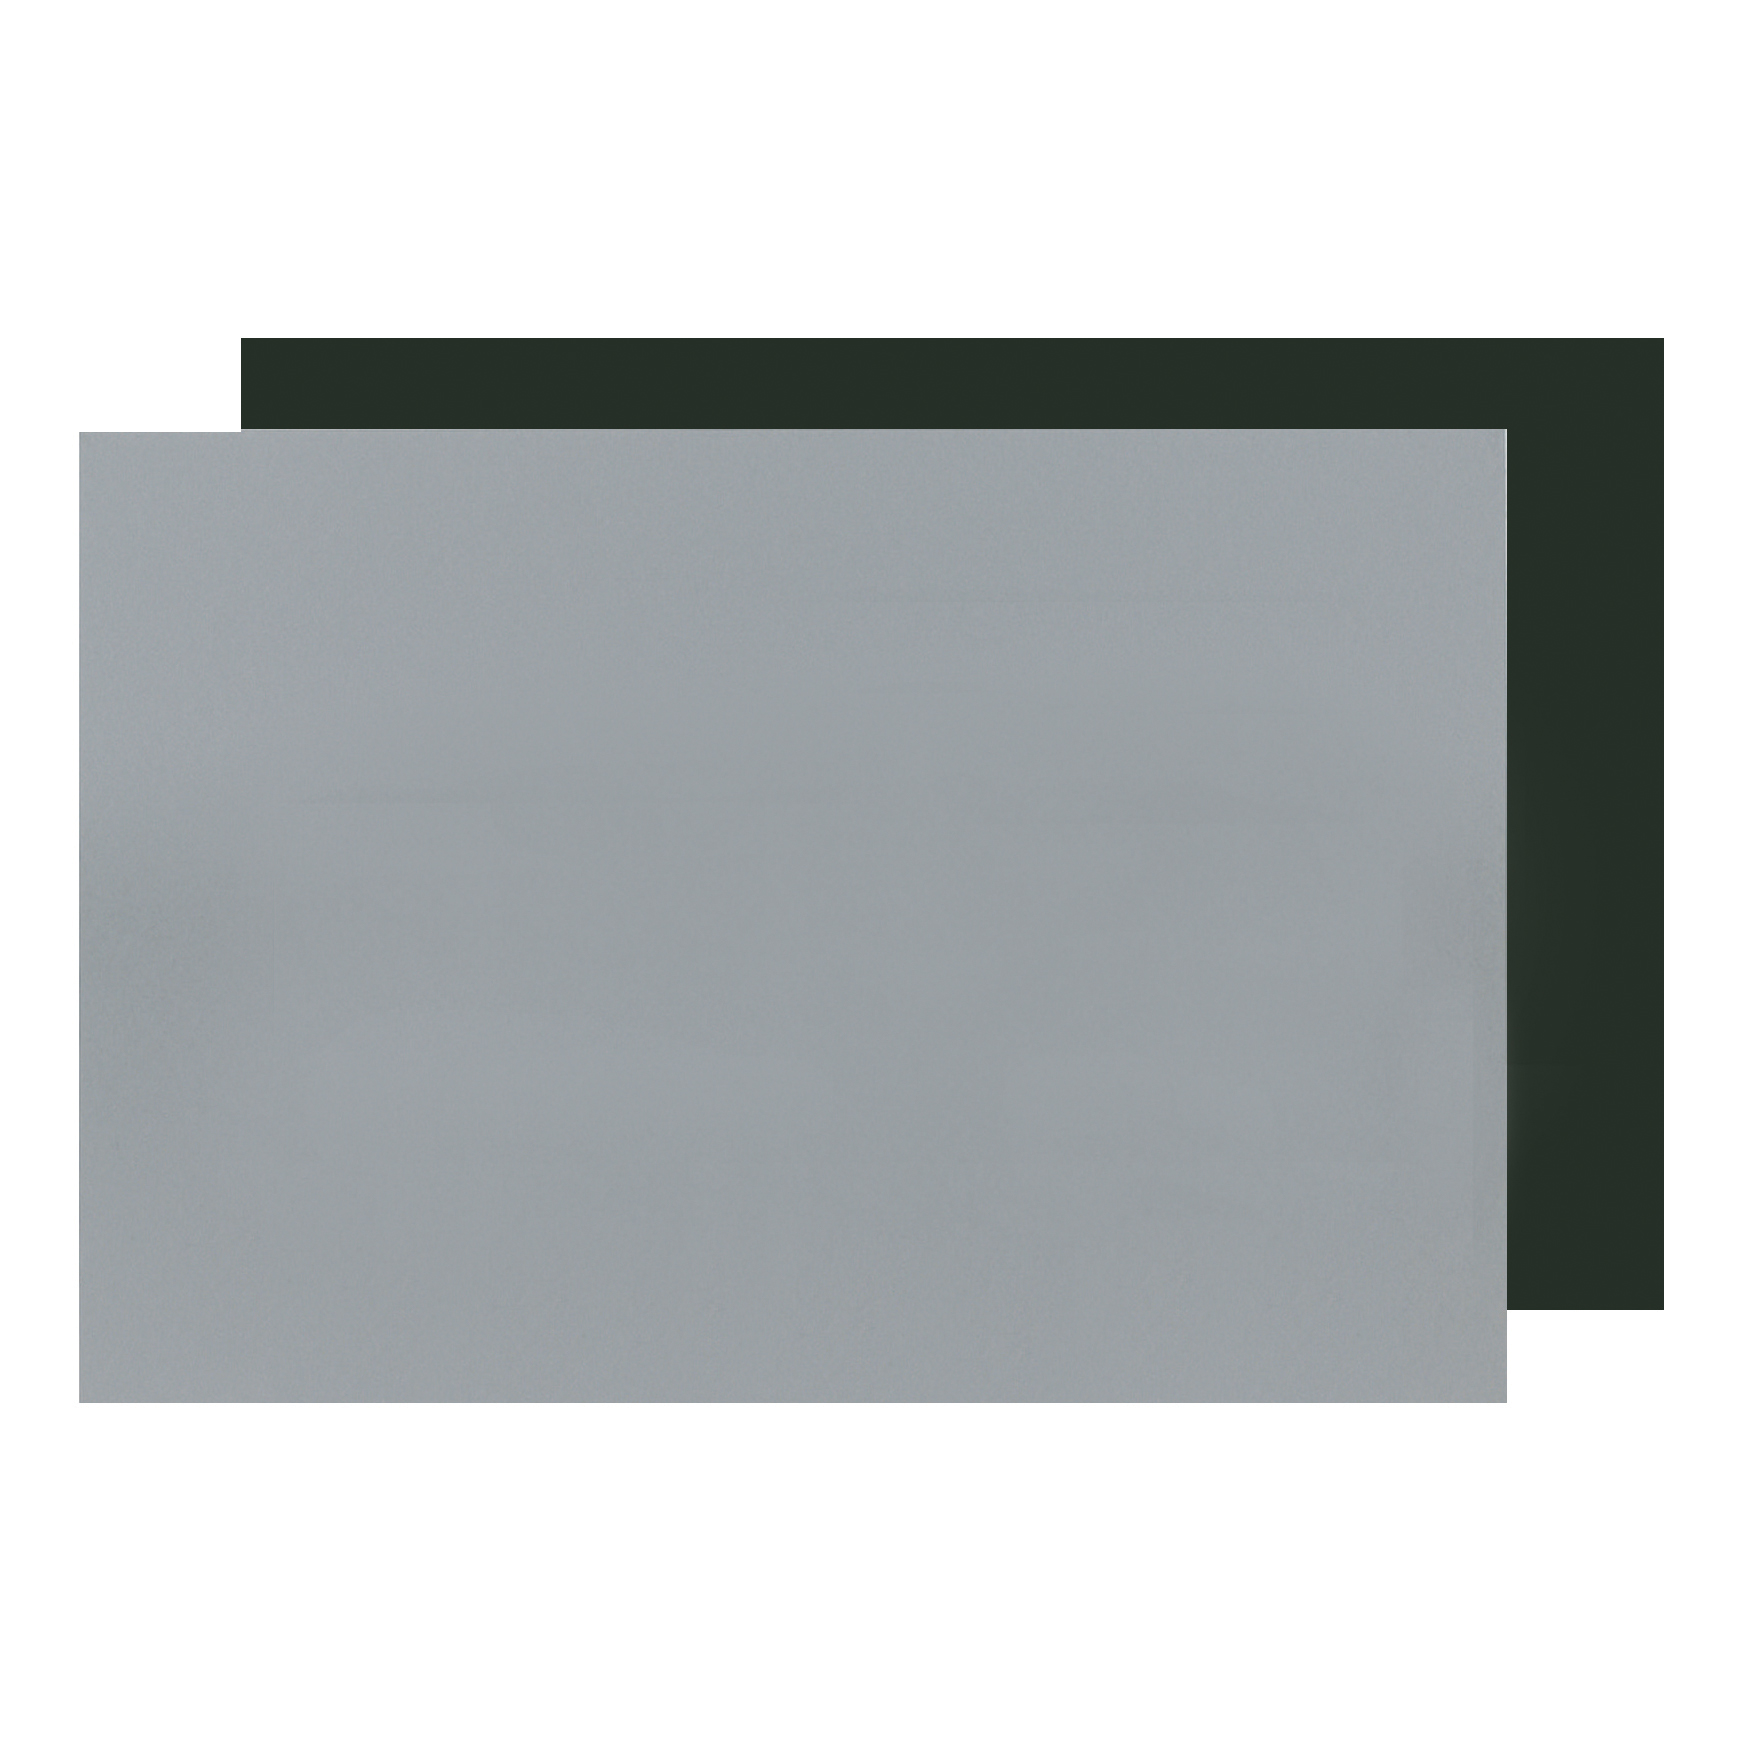 Display Board Lightweight Durable CFC Free W597xD5xH840mm A1 Black and Grey Pack 10 Ref WF6001